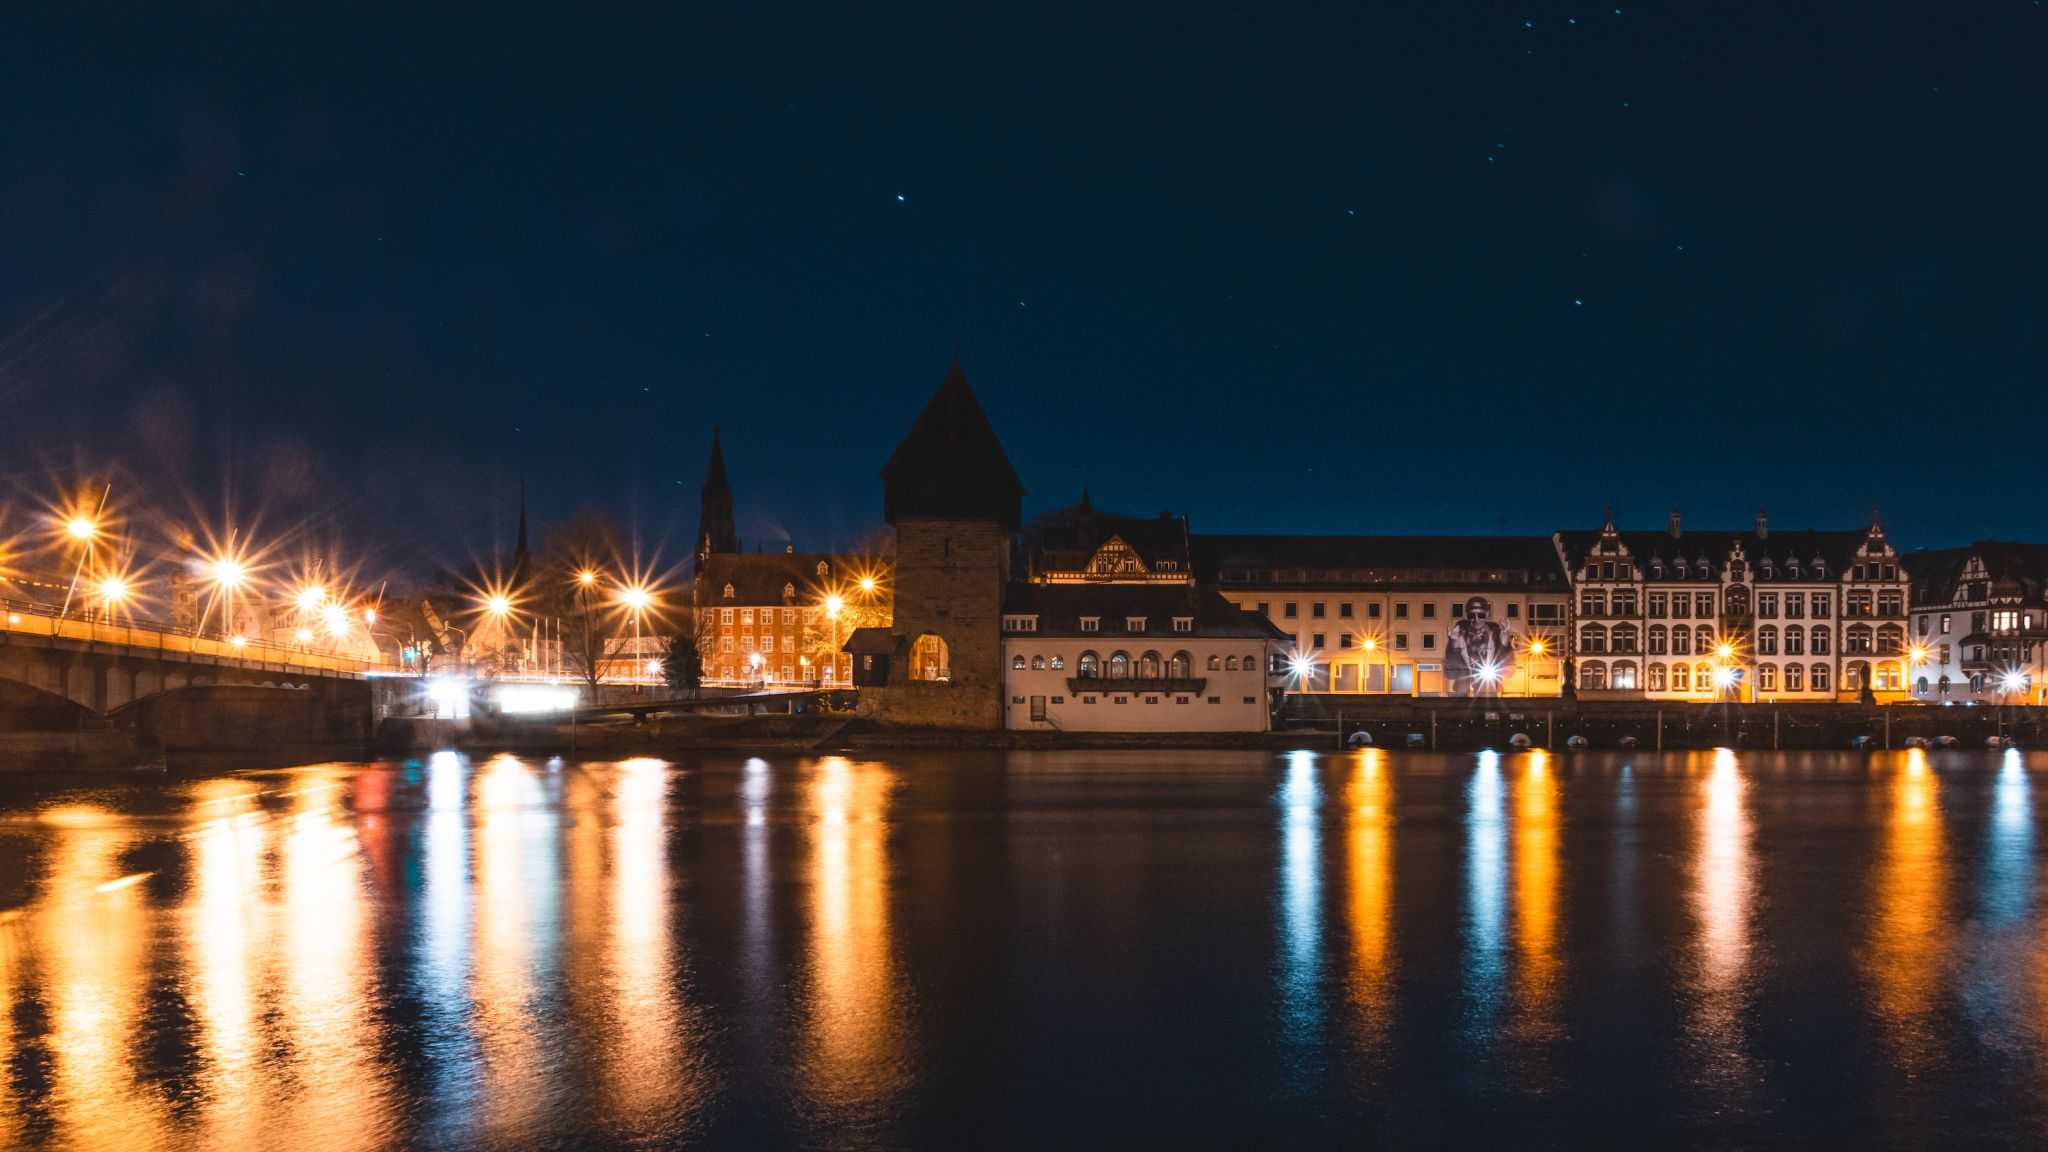 Old Konstanz from the other riverside, Germany